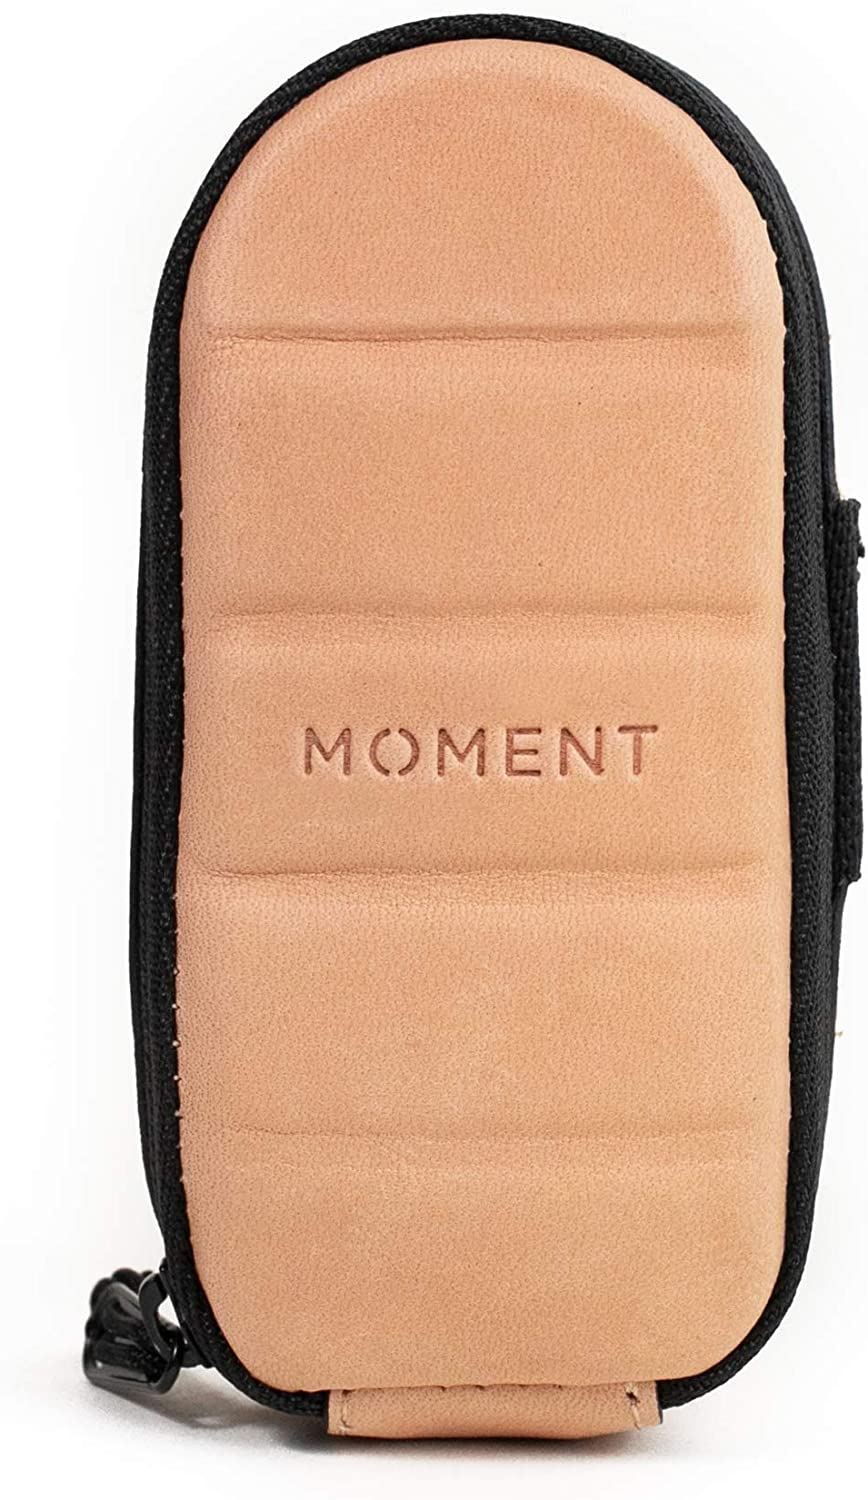 Moment Dual Mobile Lens Pouch Store and Protect 2 Accessory Lenses Leather